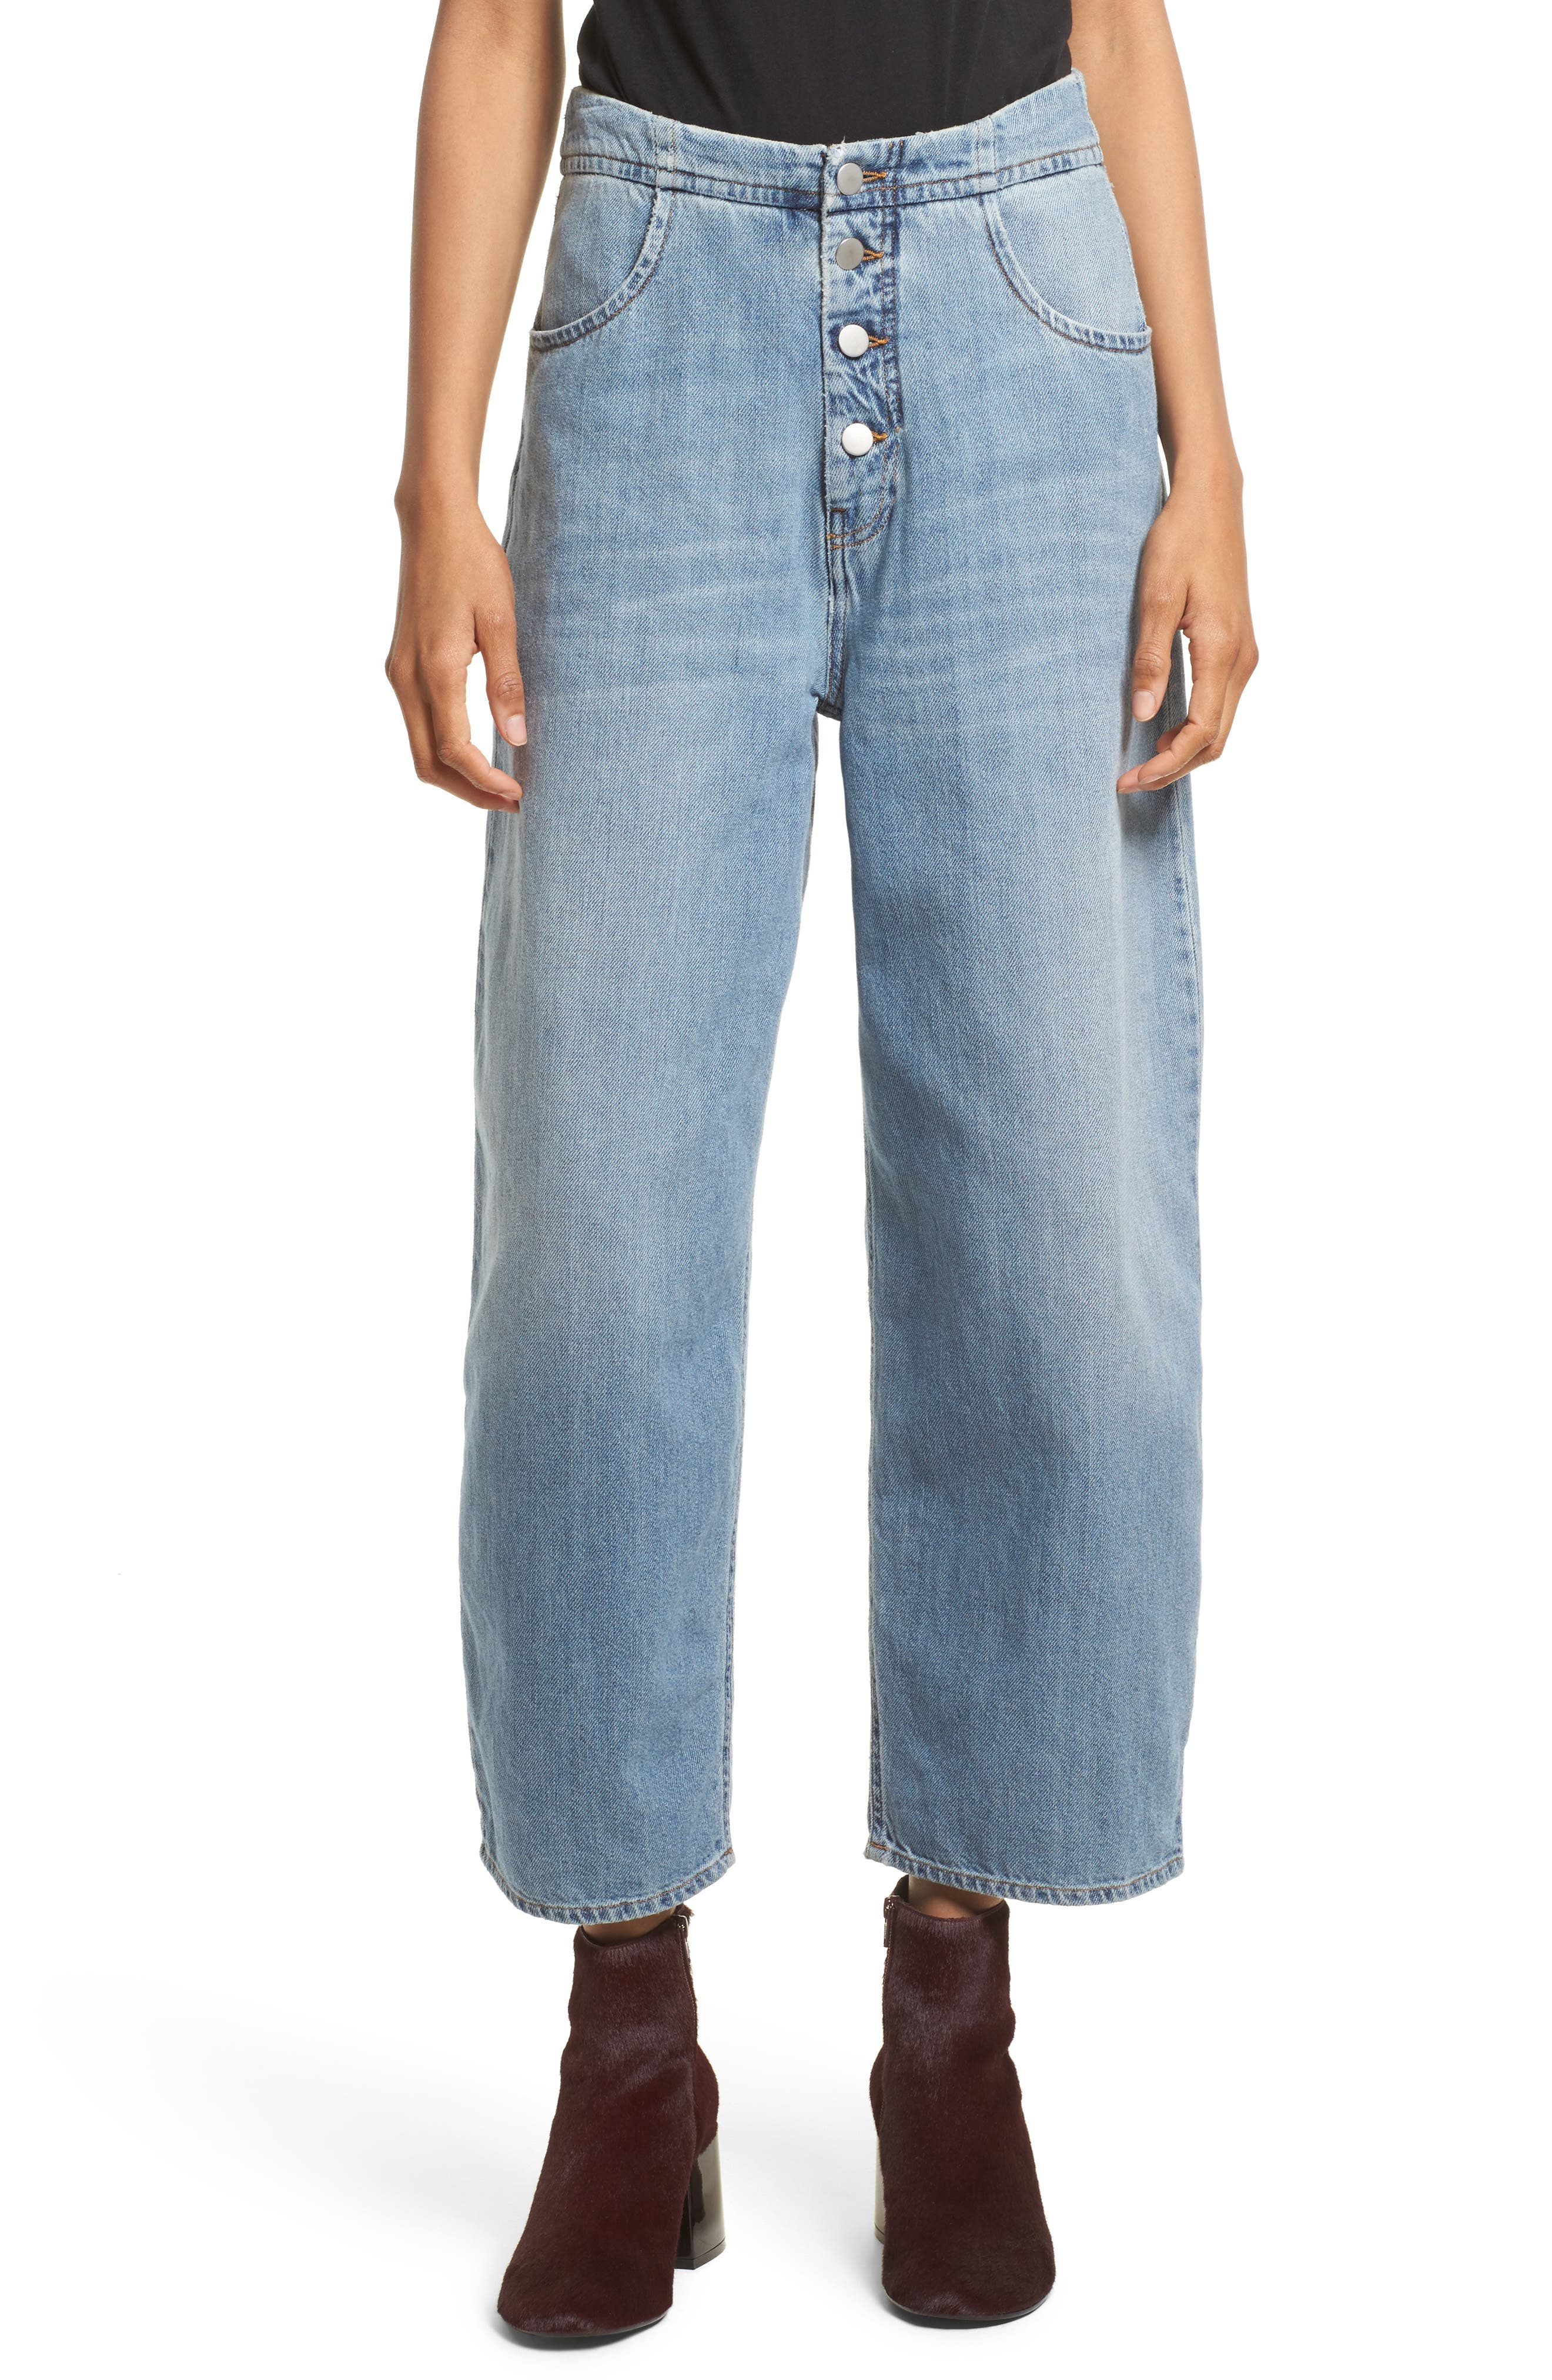 Alternate Image 1 Selected - MM6 Maison Margiela Relaxed Fit Crop Jeans